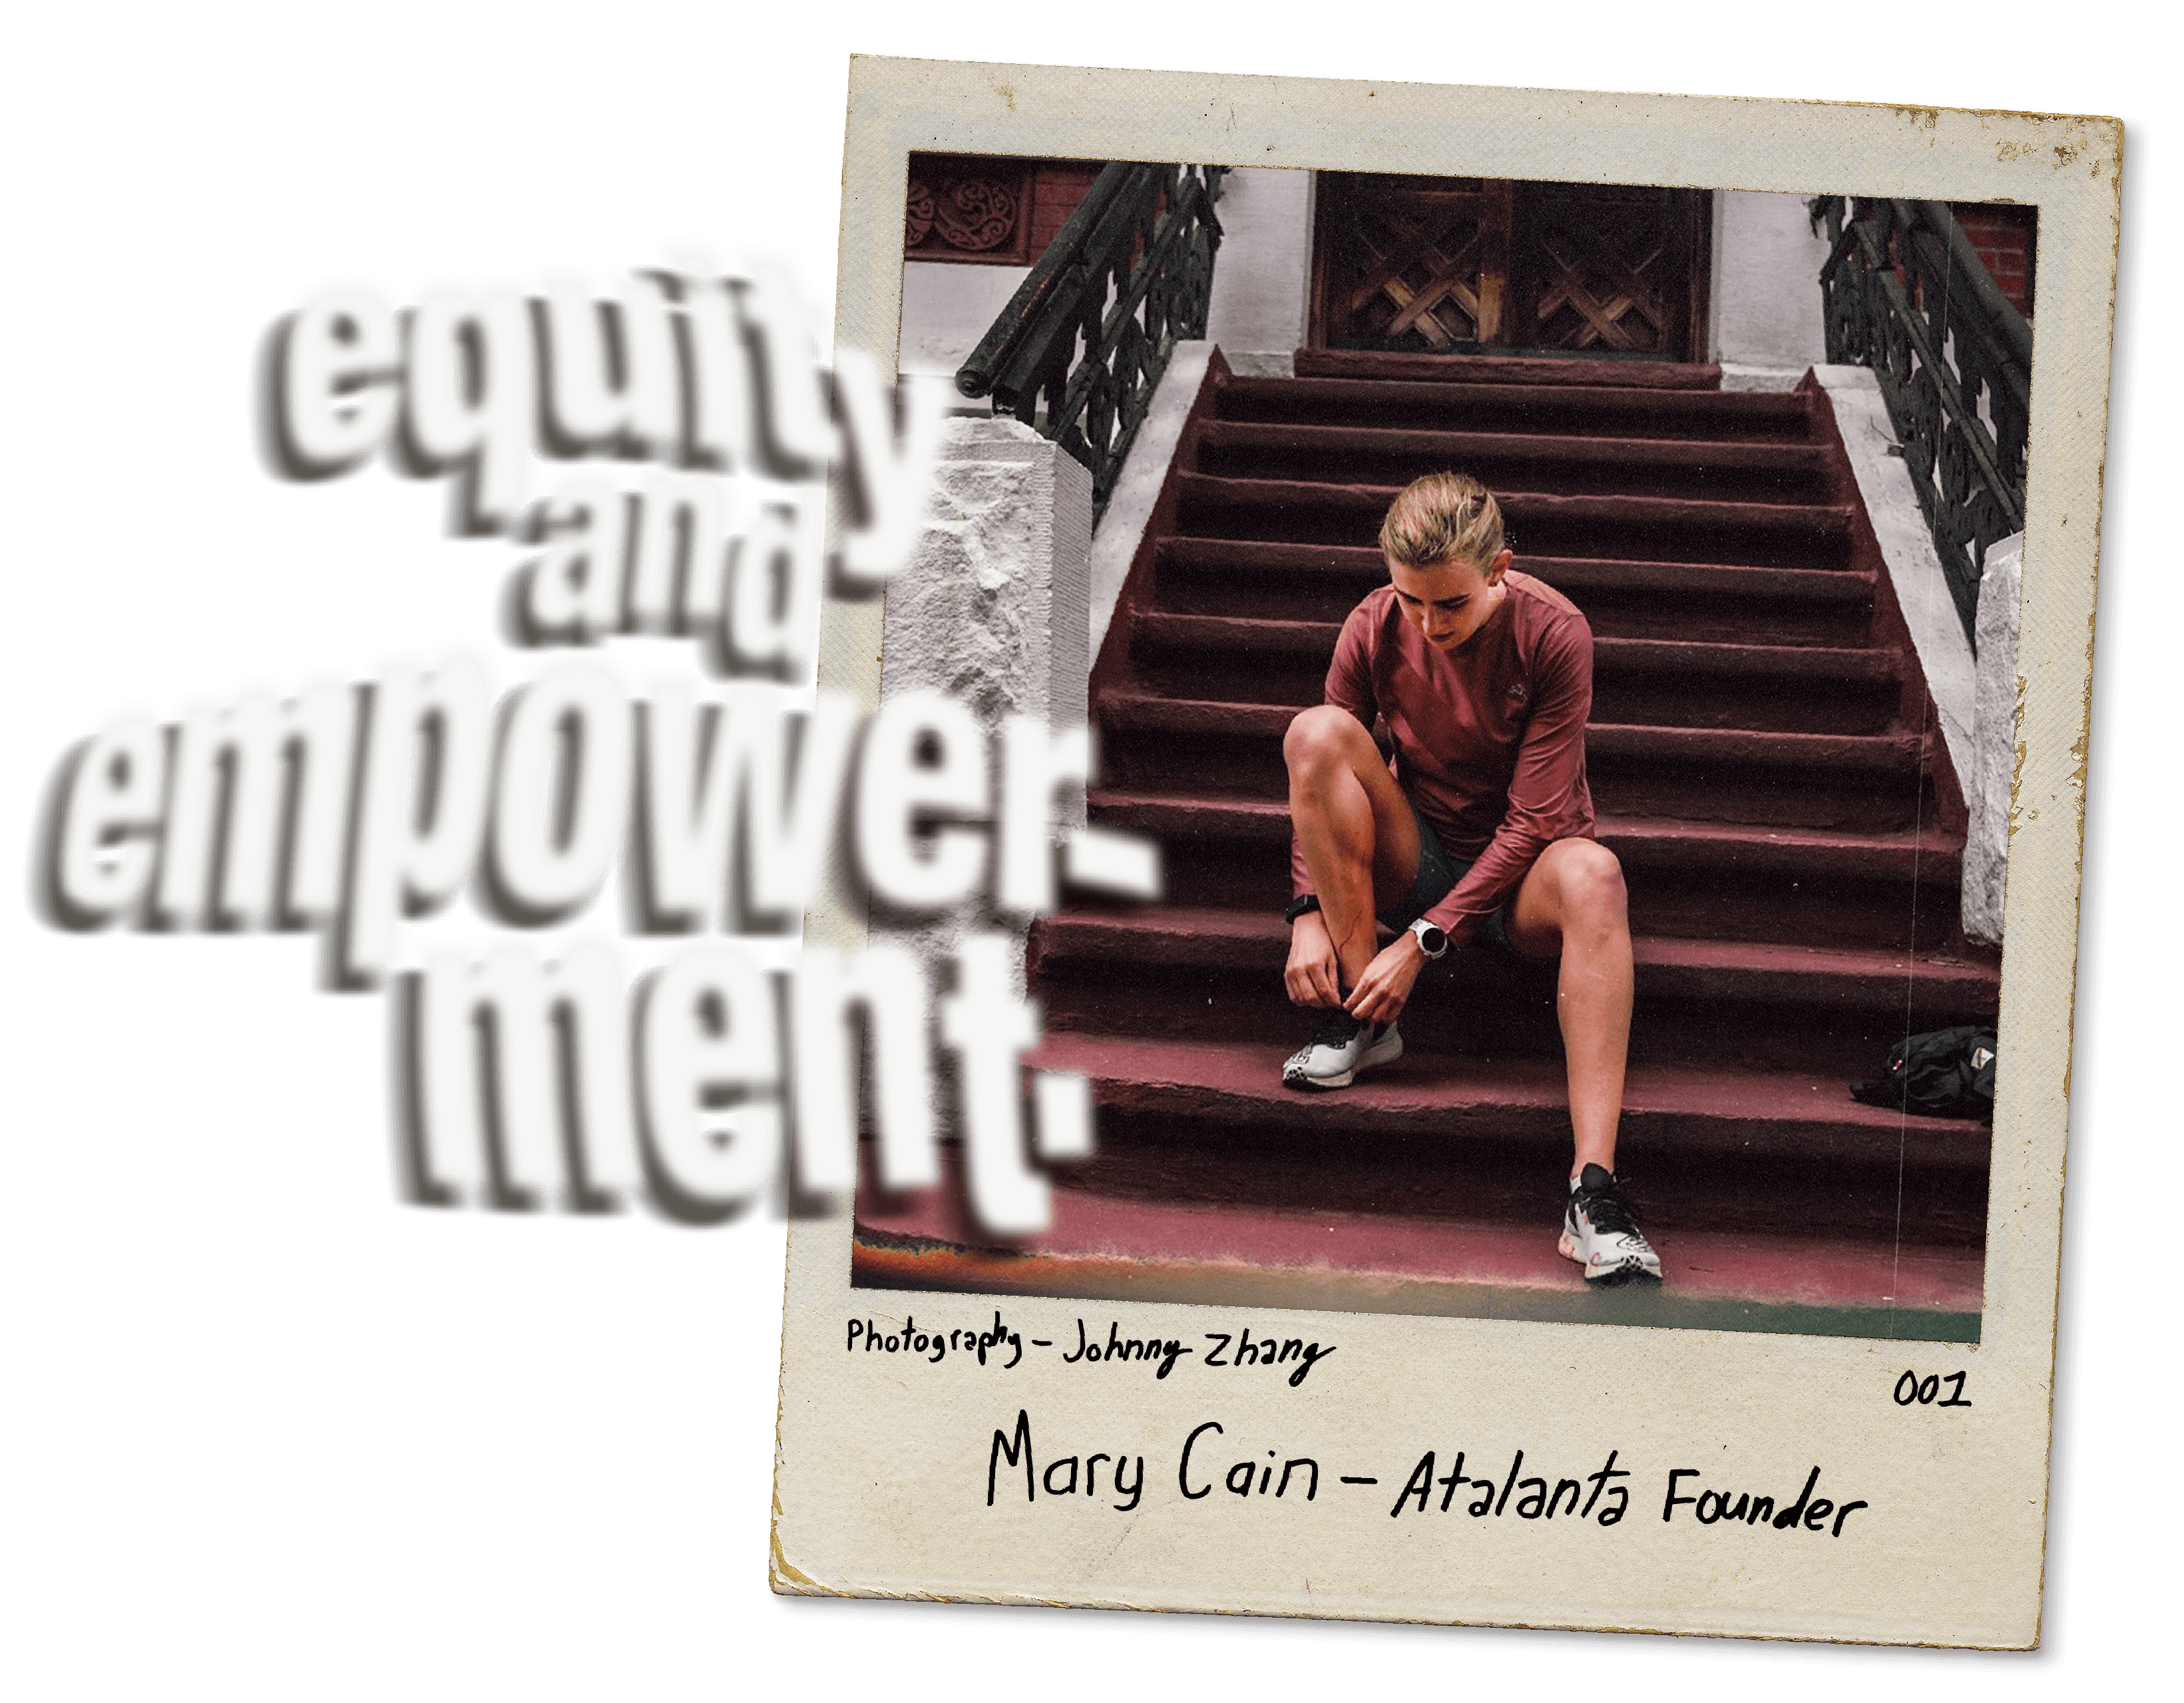 Equity and Empowerment